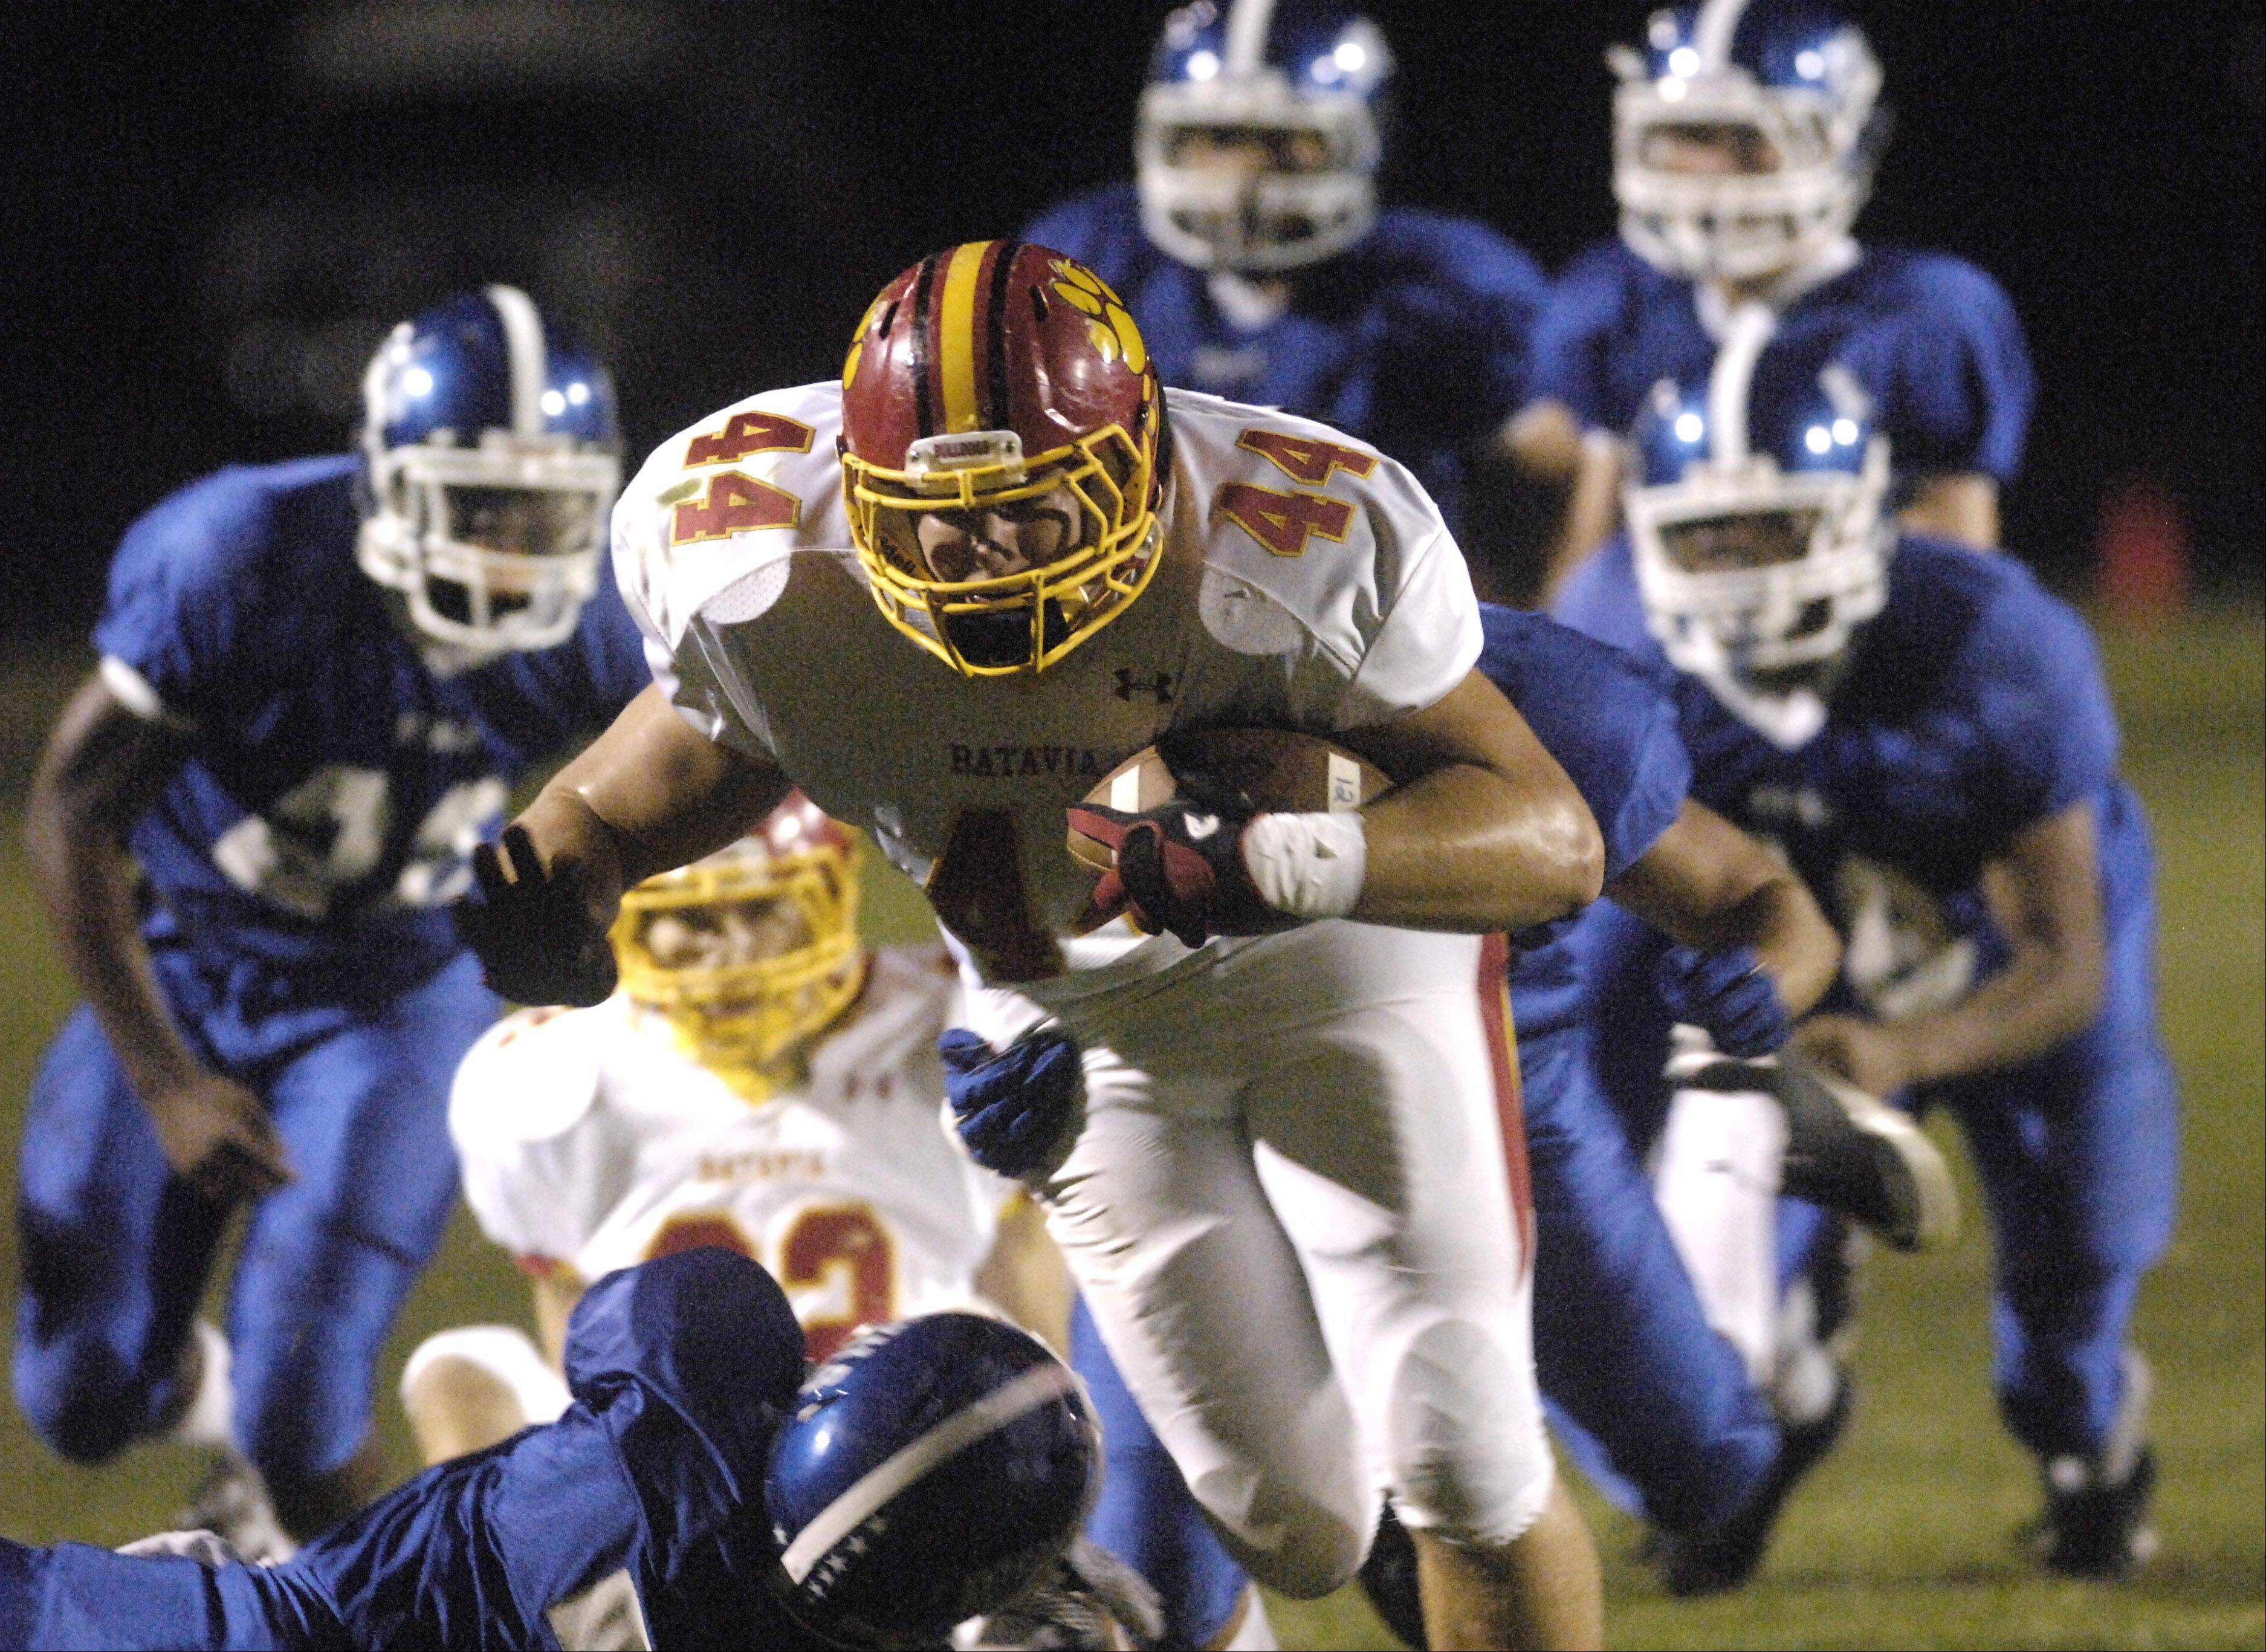 Batavia?s Alec Lyons breaks through a pack of Larkin defenders for a gain during Friday?s action at Memorial Field in Elgin.